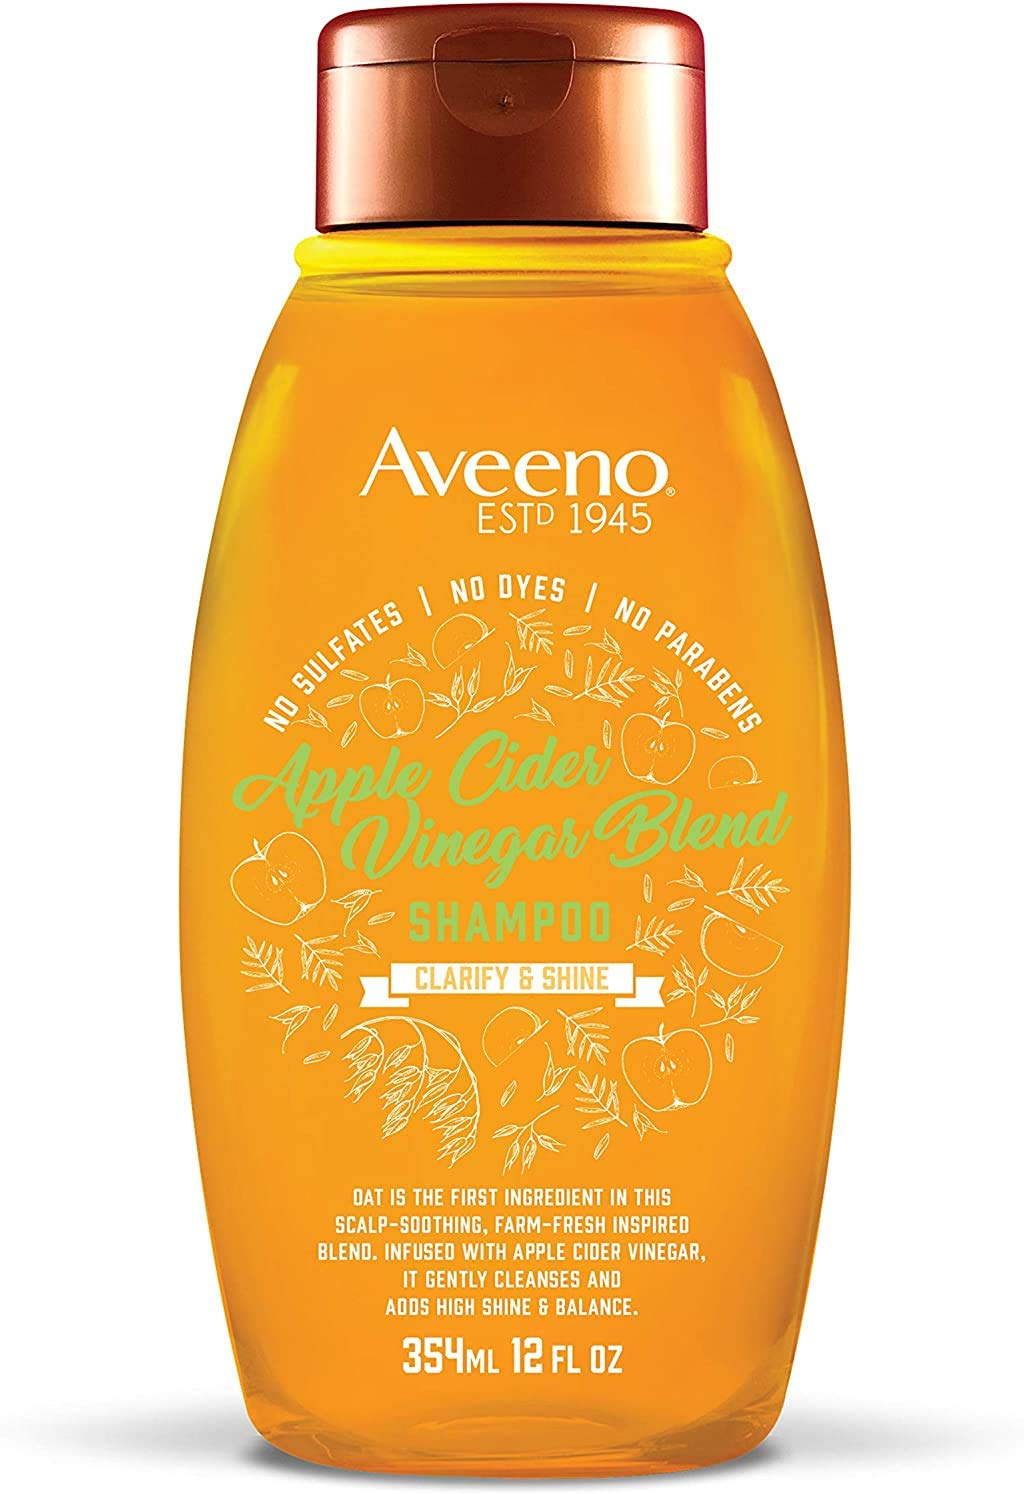 Aveeno Scalp Soothing Shampoo, Apple Cider Vinegar Blend, 12 Fl Oz